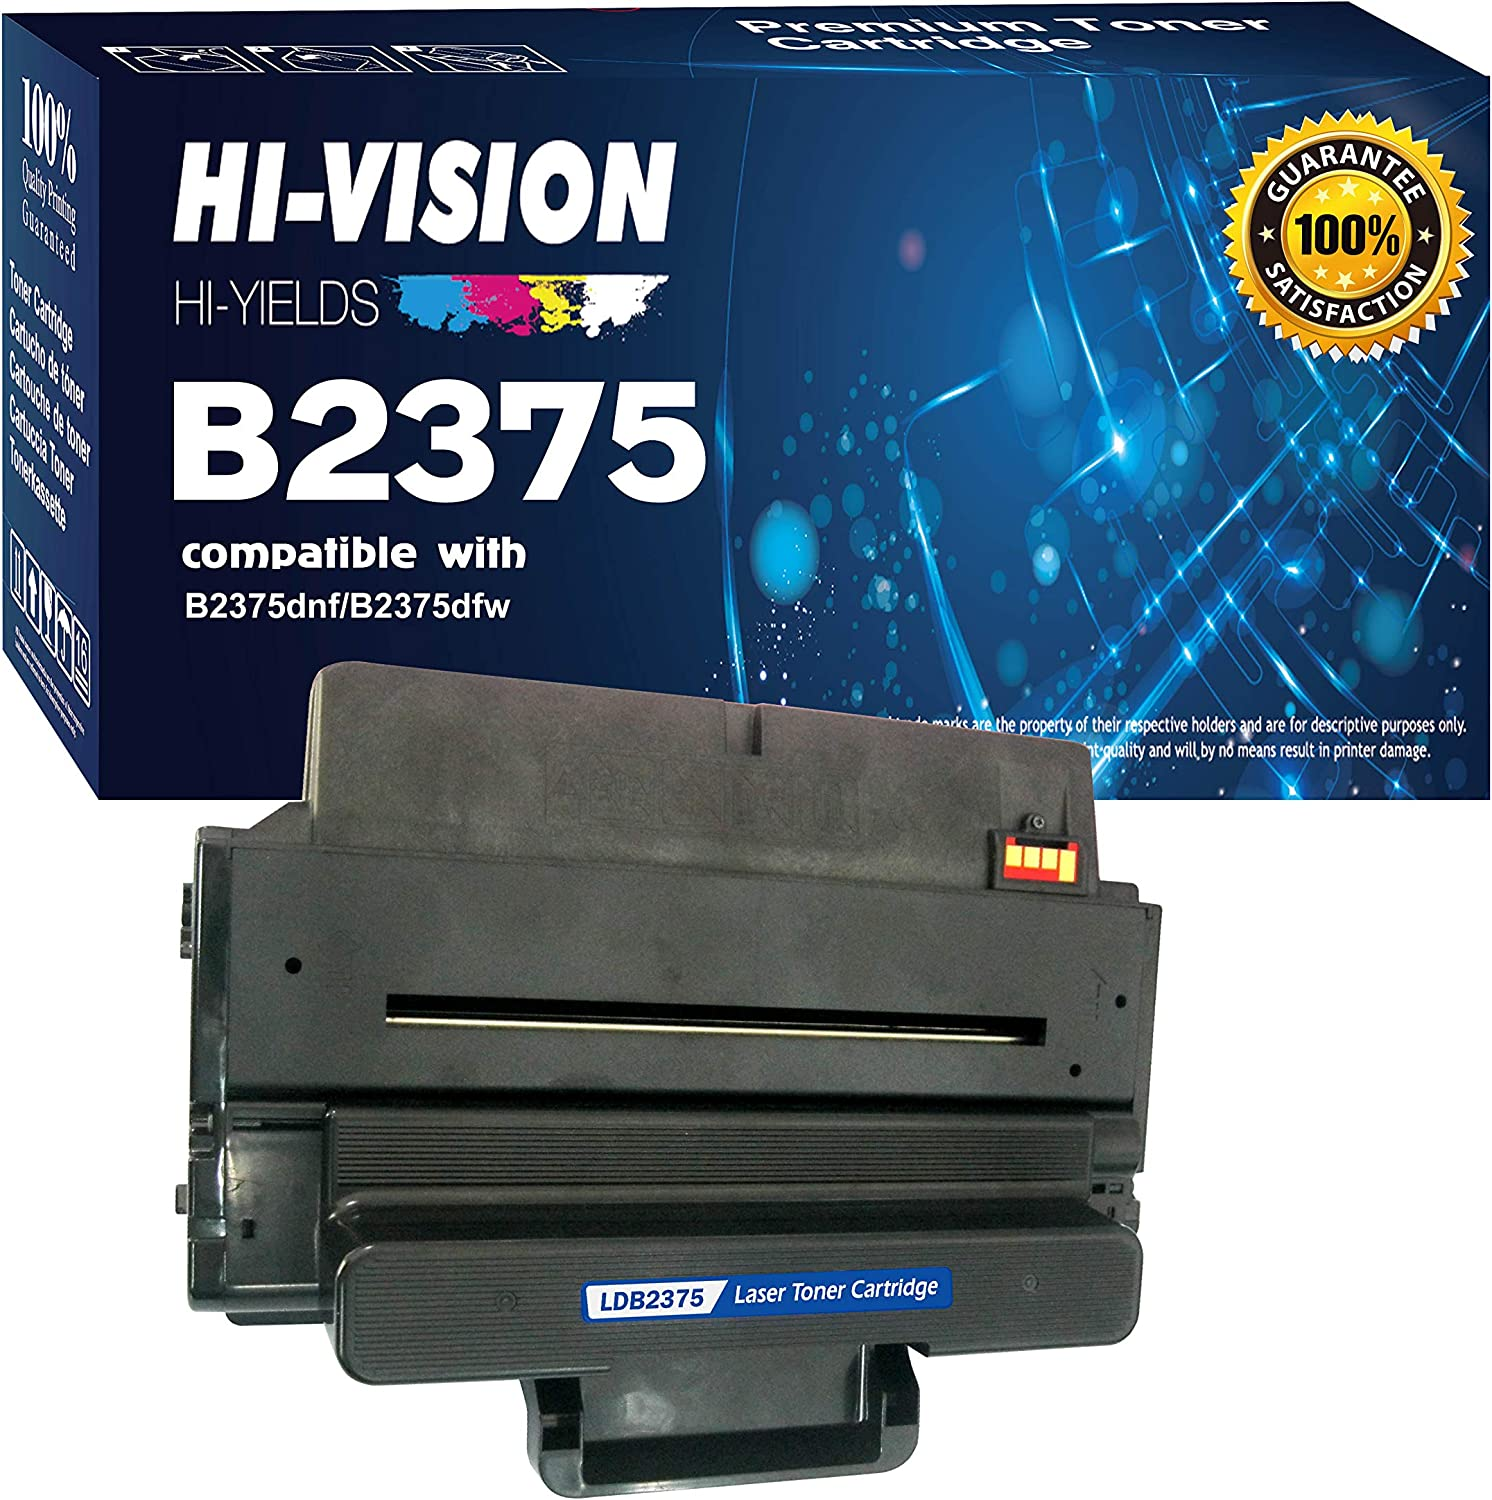 HI-VISION HI-YIELDS Compatible Dell B2375 593-BBBJ 8PTH4 (1 Pack) Black [10,000 Pages] Toner Cartridge Replacement for B2375dnf B2375dfw Multifunction Printers